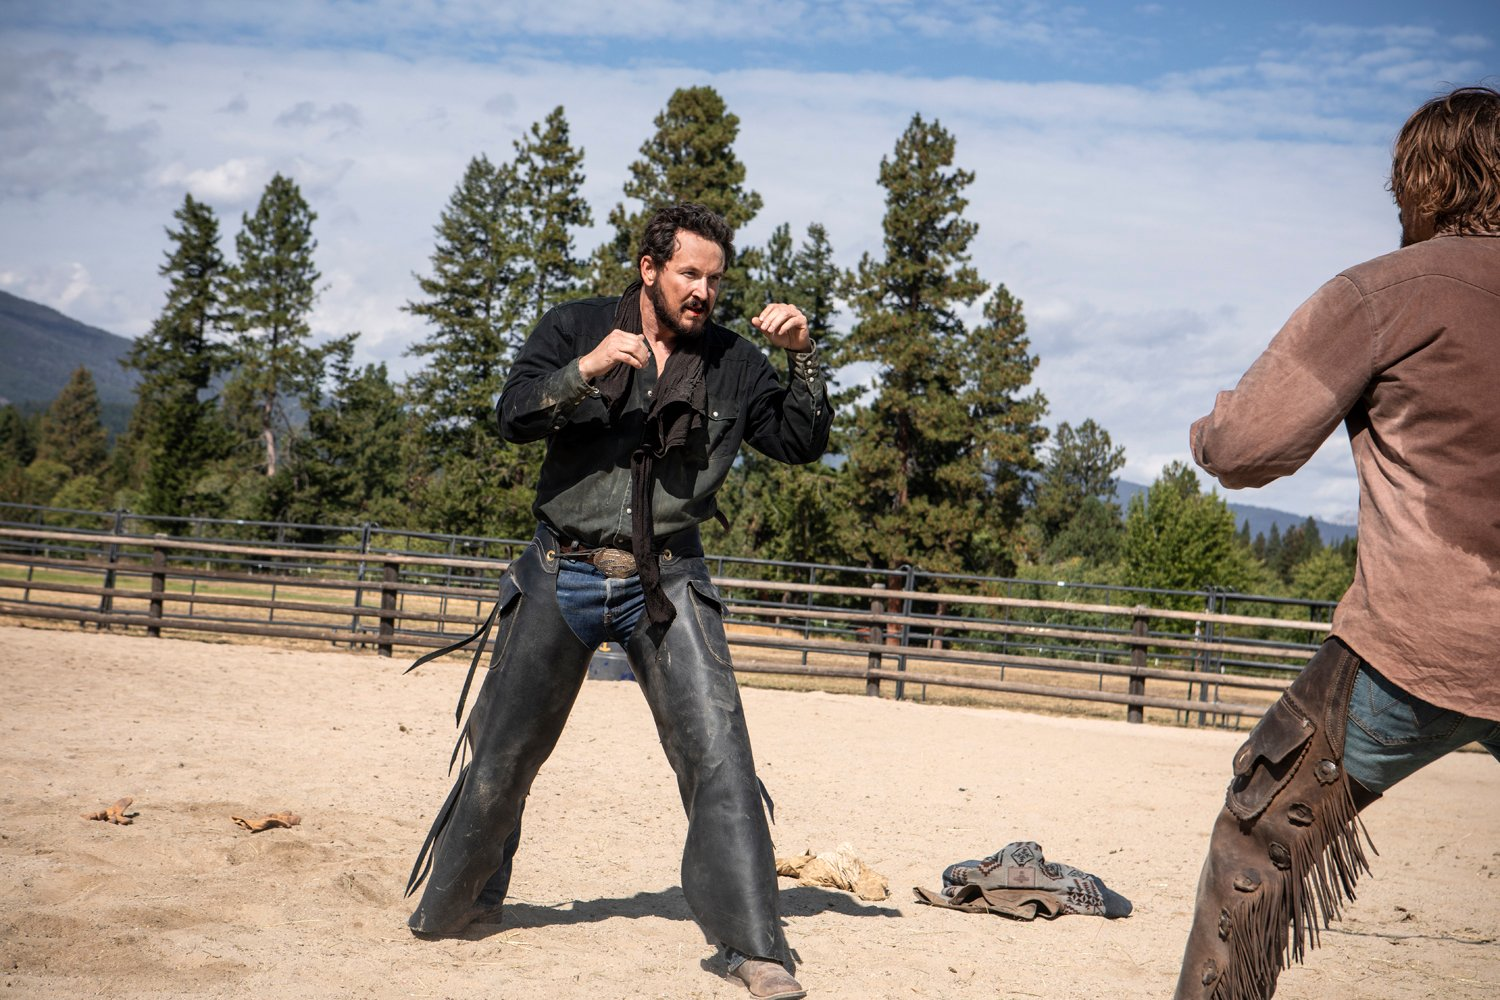 Photos From 'Yellowstone' Season 2, Episode 2 'New Beginnings' Show